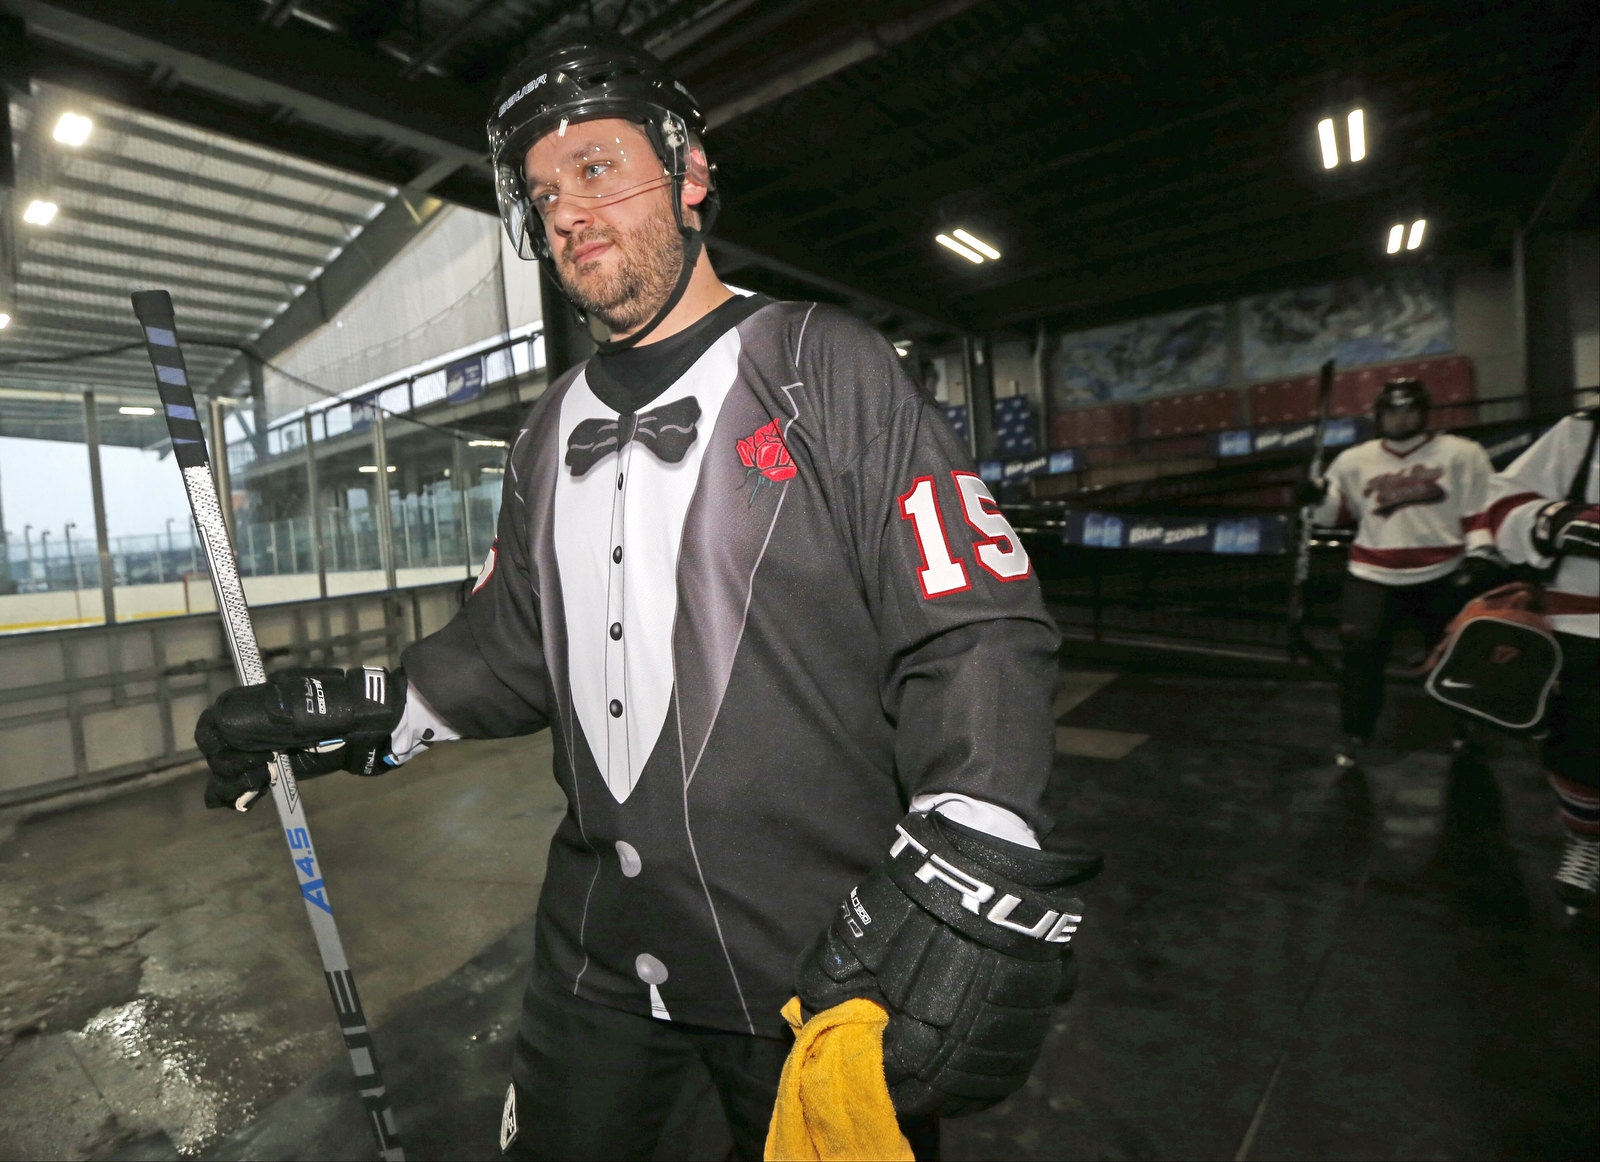 Shane Cashdollar, a cybersecurity consultant from Washington, D.C., takes to the ice with his team called Old Skool.